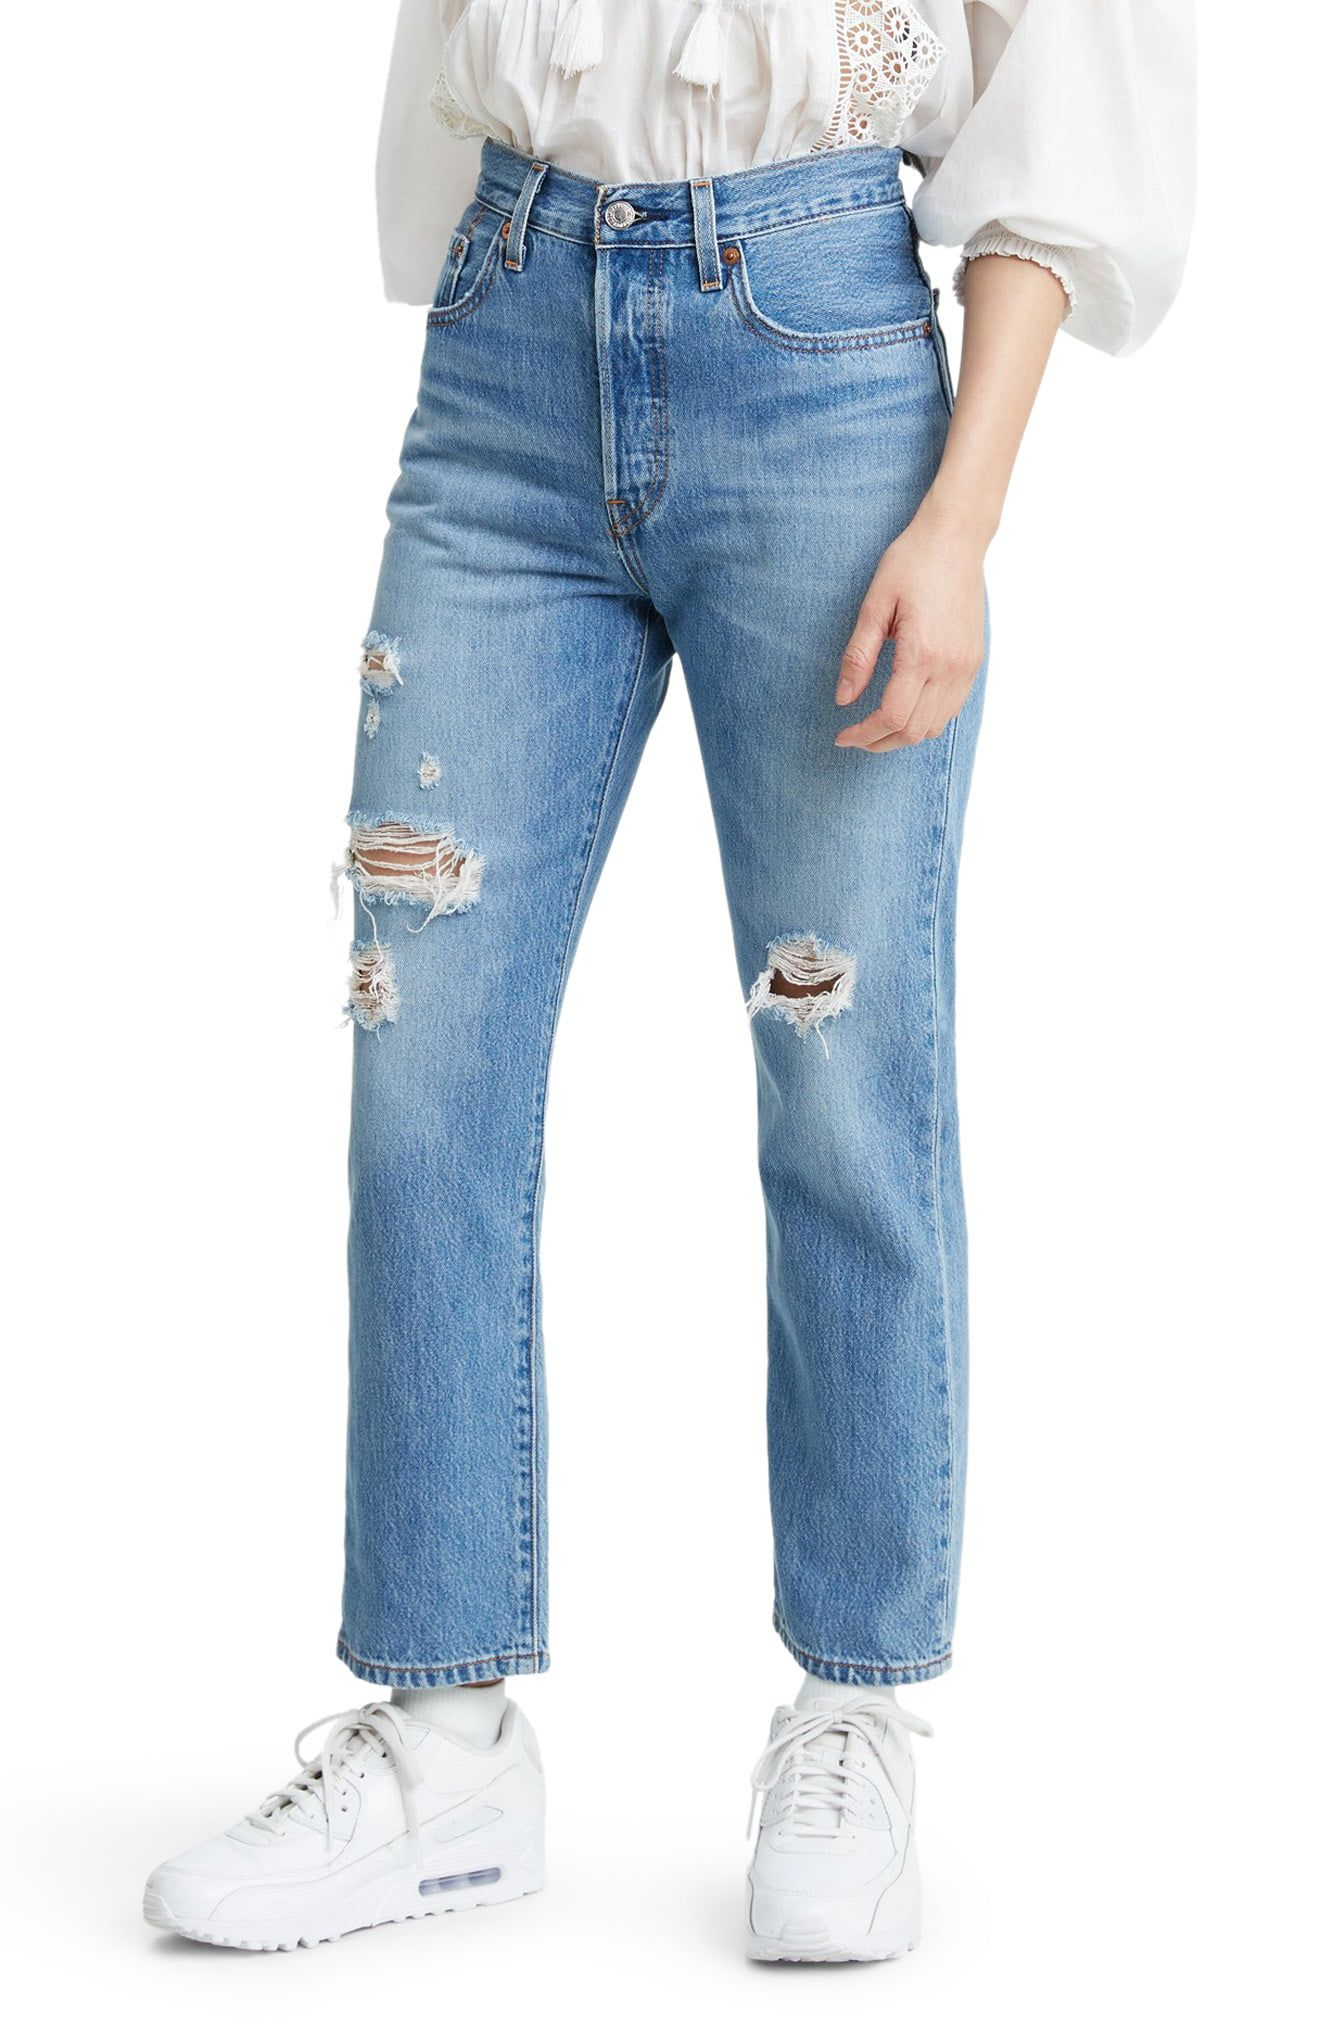 High-waisted jeans get artfully destructed in the latest version of the brand's beloved 501s cut from nonstretch denim for an authentic vintage feel. Style Name:Levi's 501 Ripped High Waist Crop Straight Leg Jeans (Sansome Light). Style Number: 6055578. Available in stores.